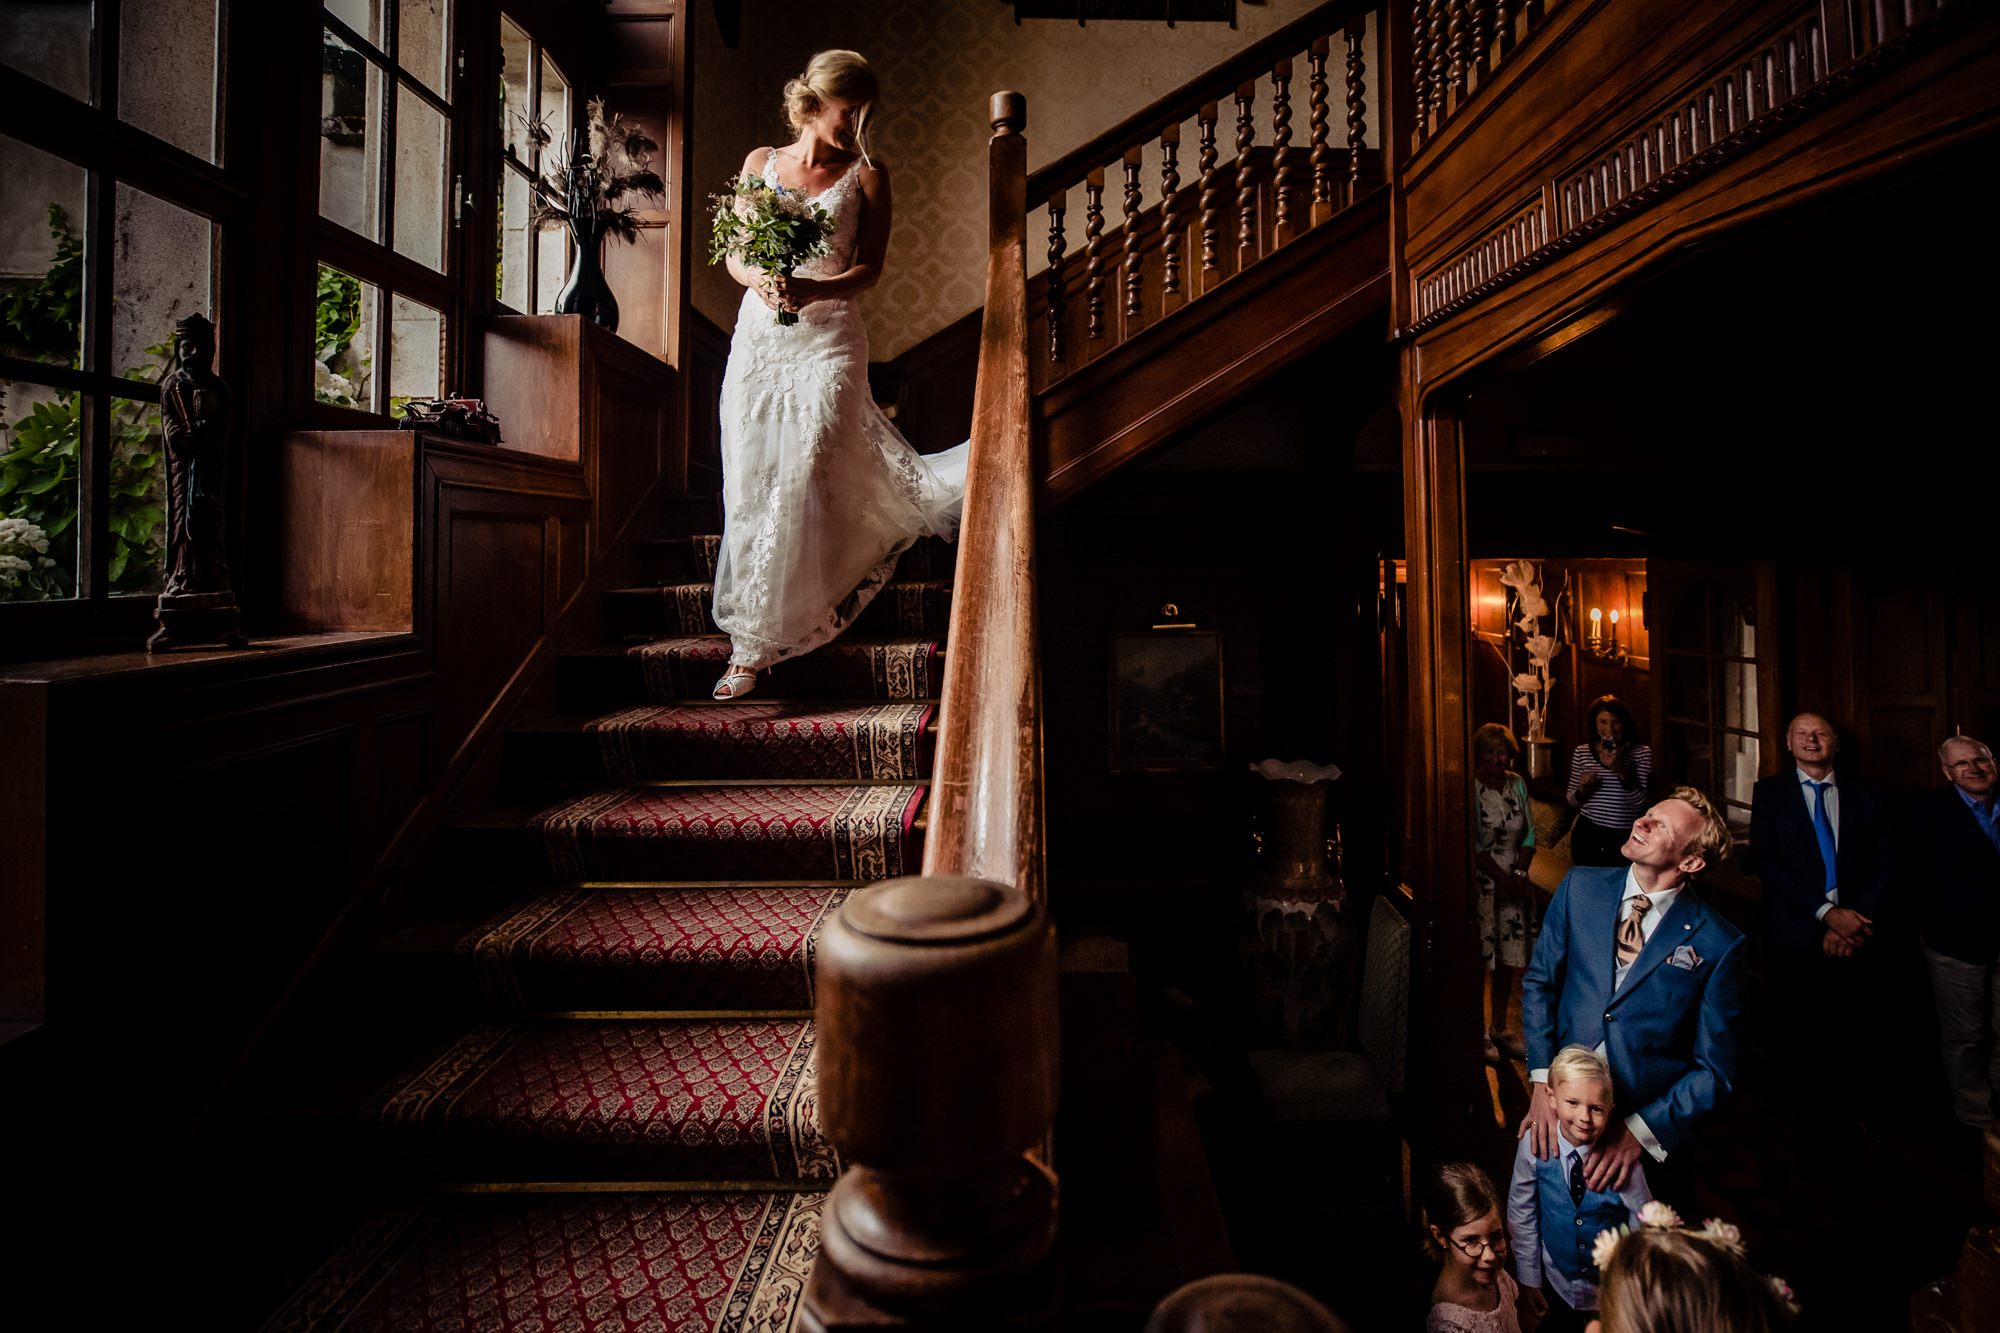 Bride descending stairs for first look, by Eppel Fotographie